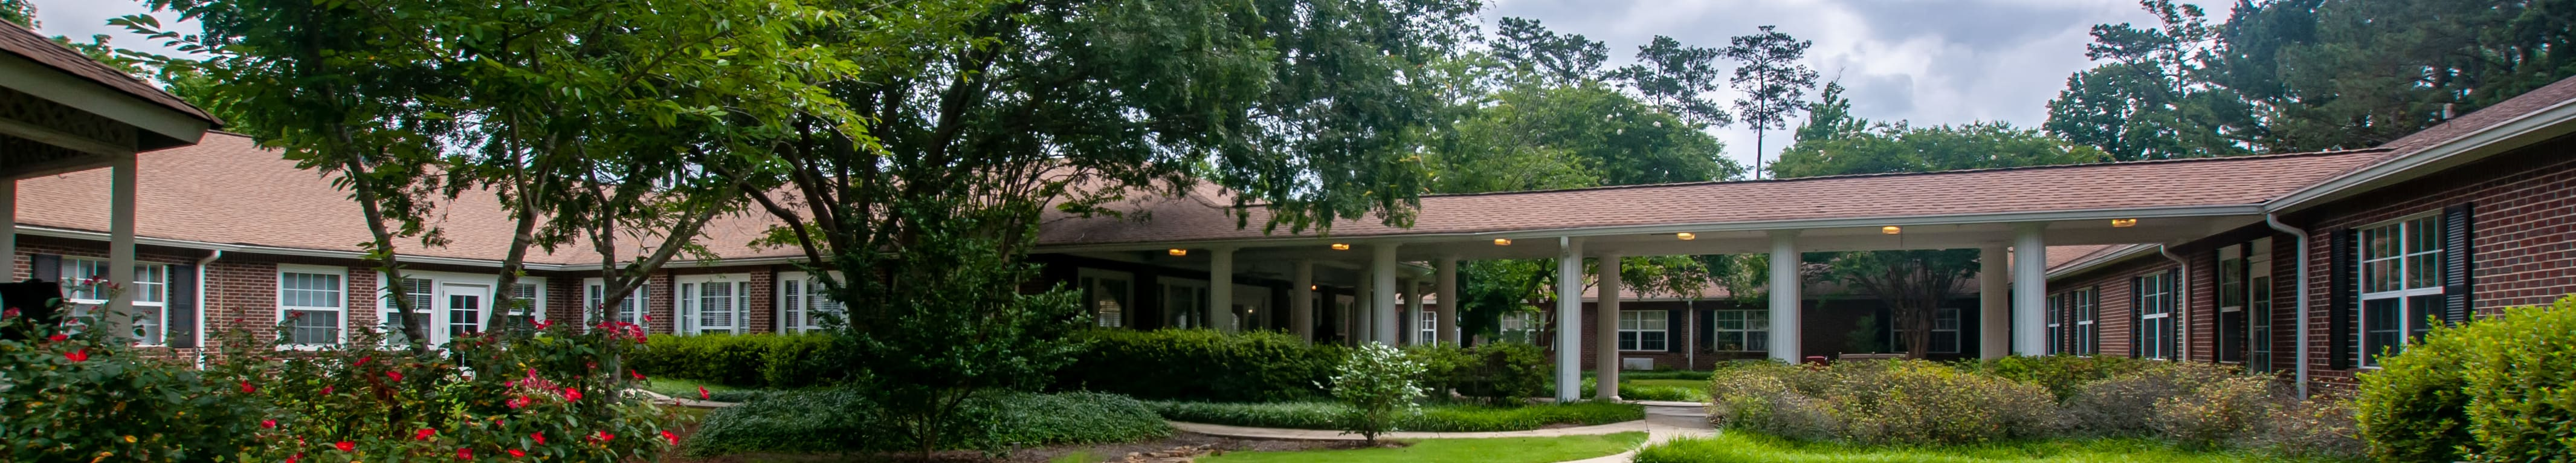 Senior living community in Hoover, AL